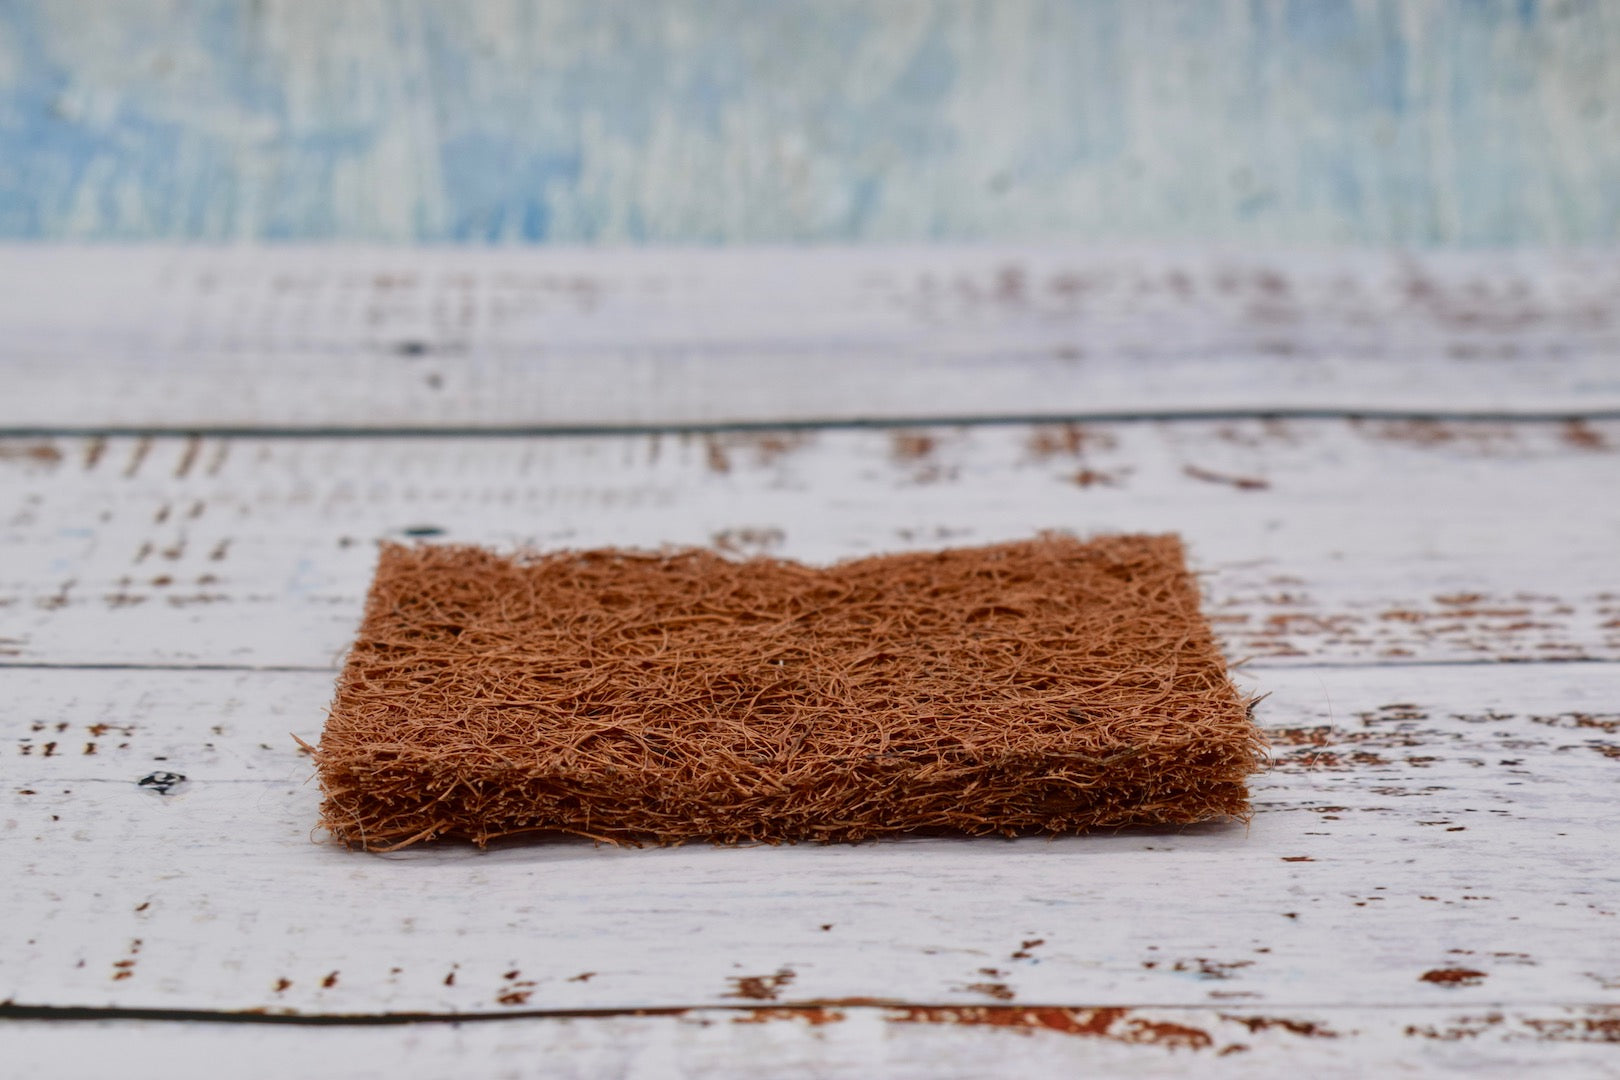 Coconut scourer, Coconut sponge side view